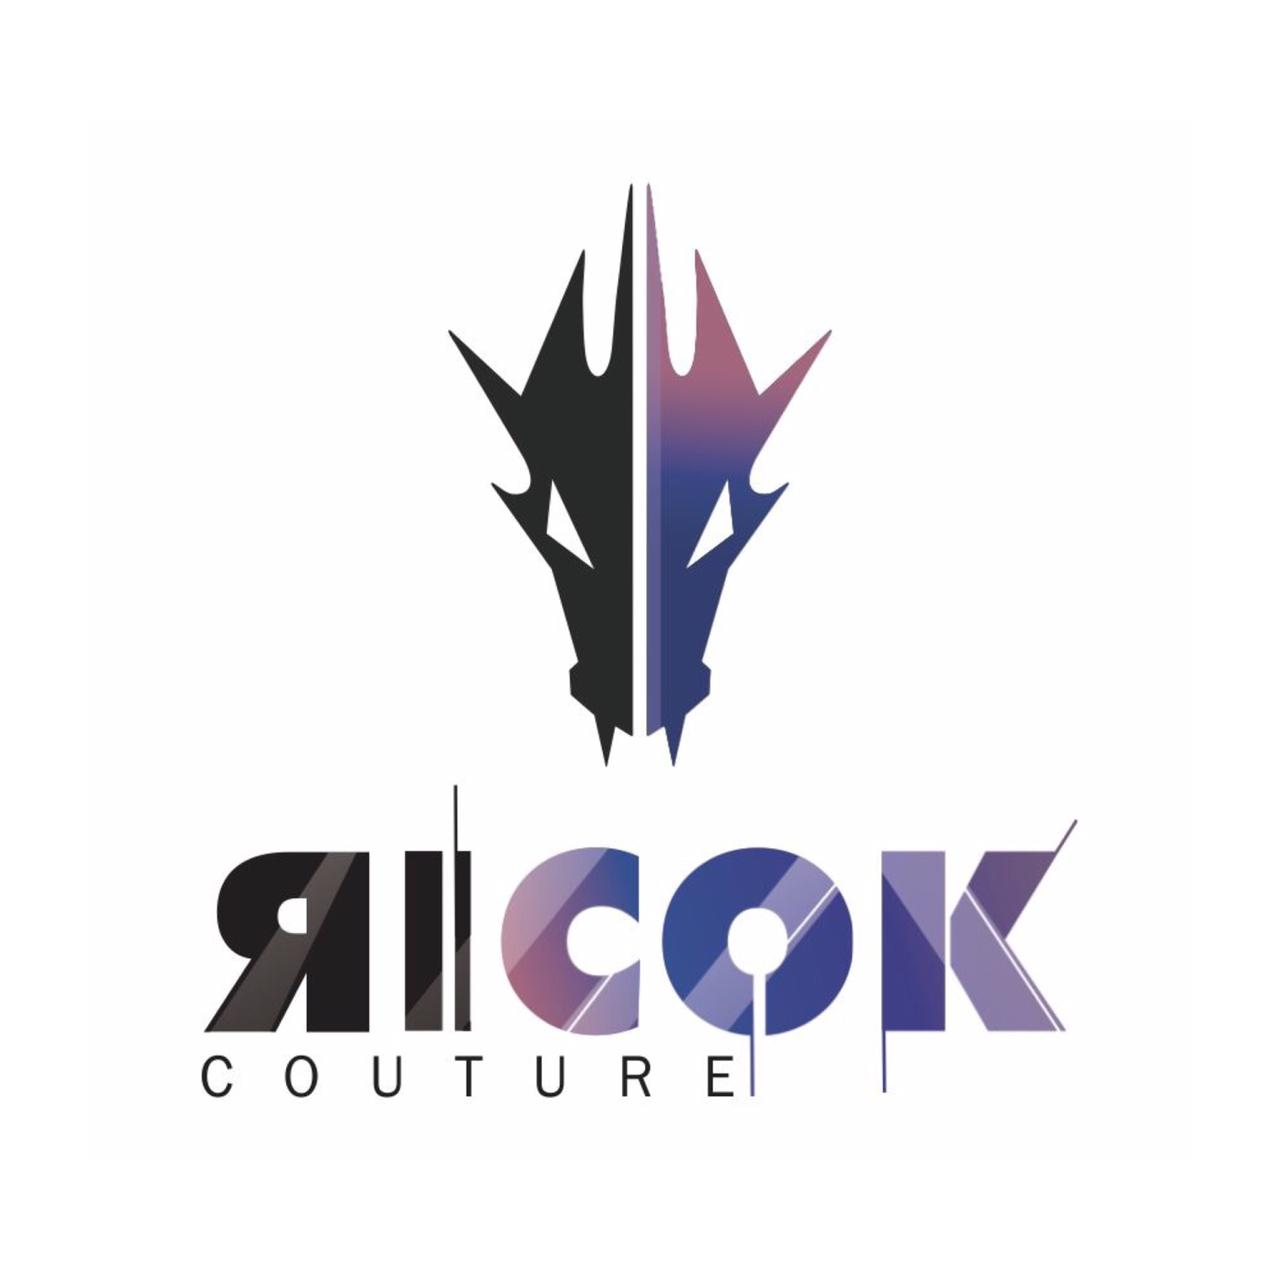 Ricok couture